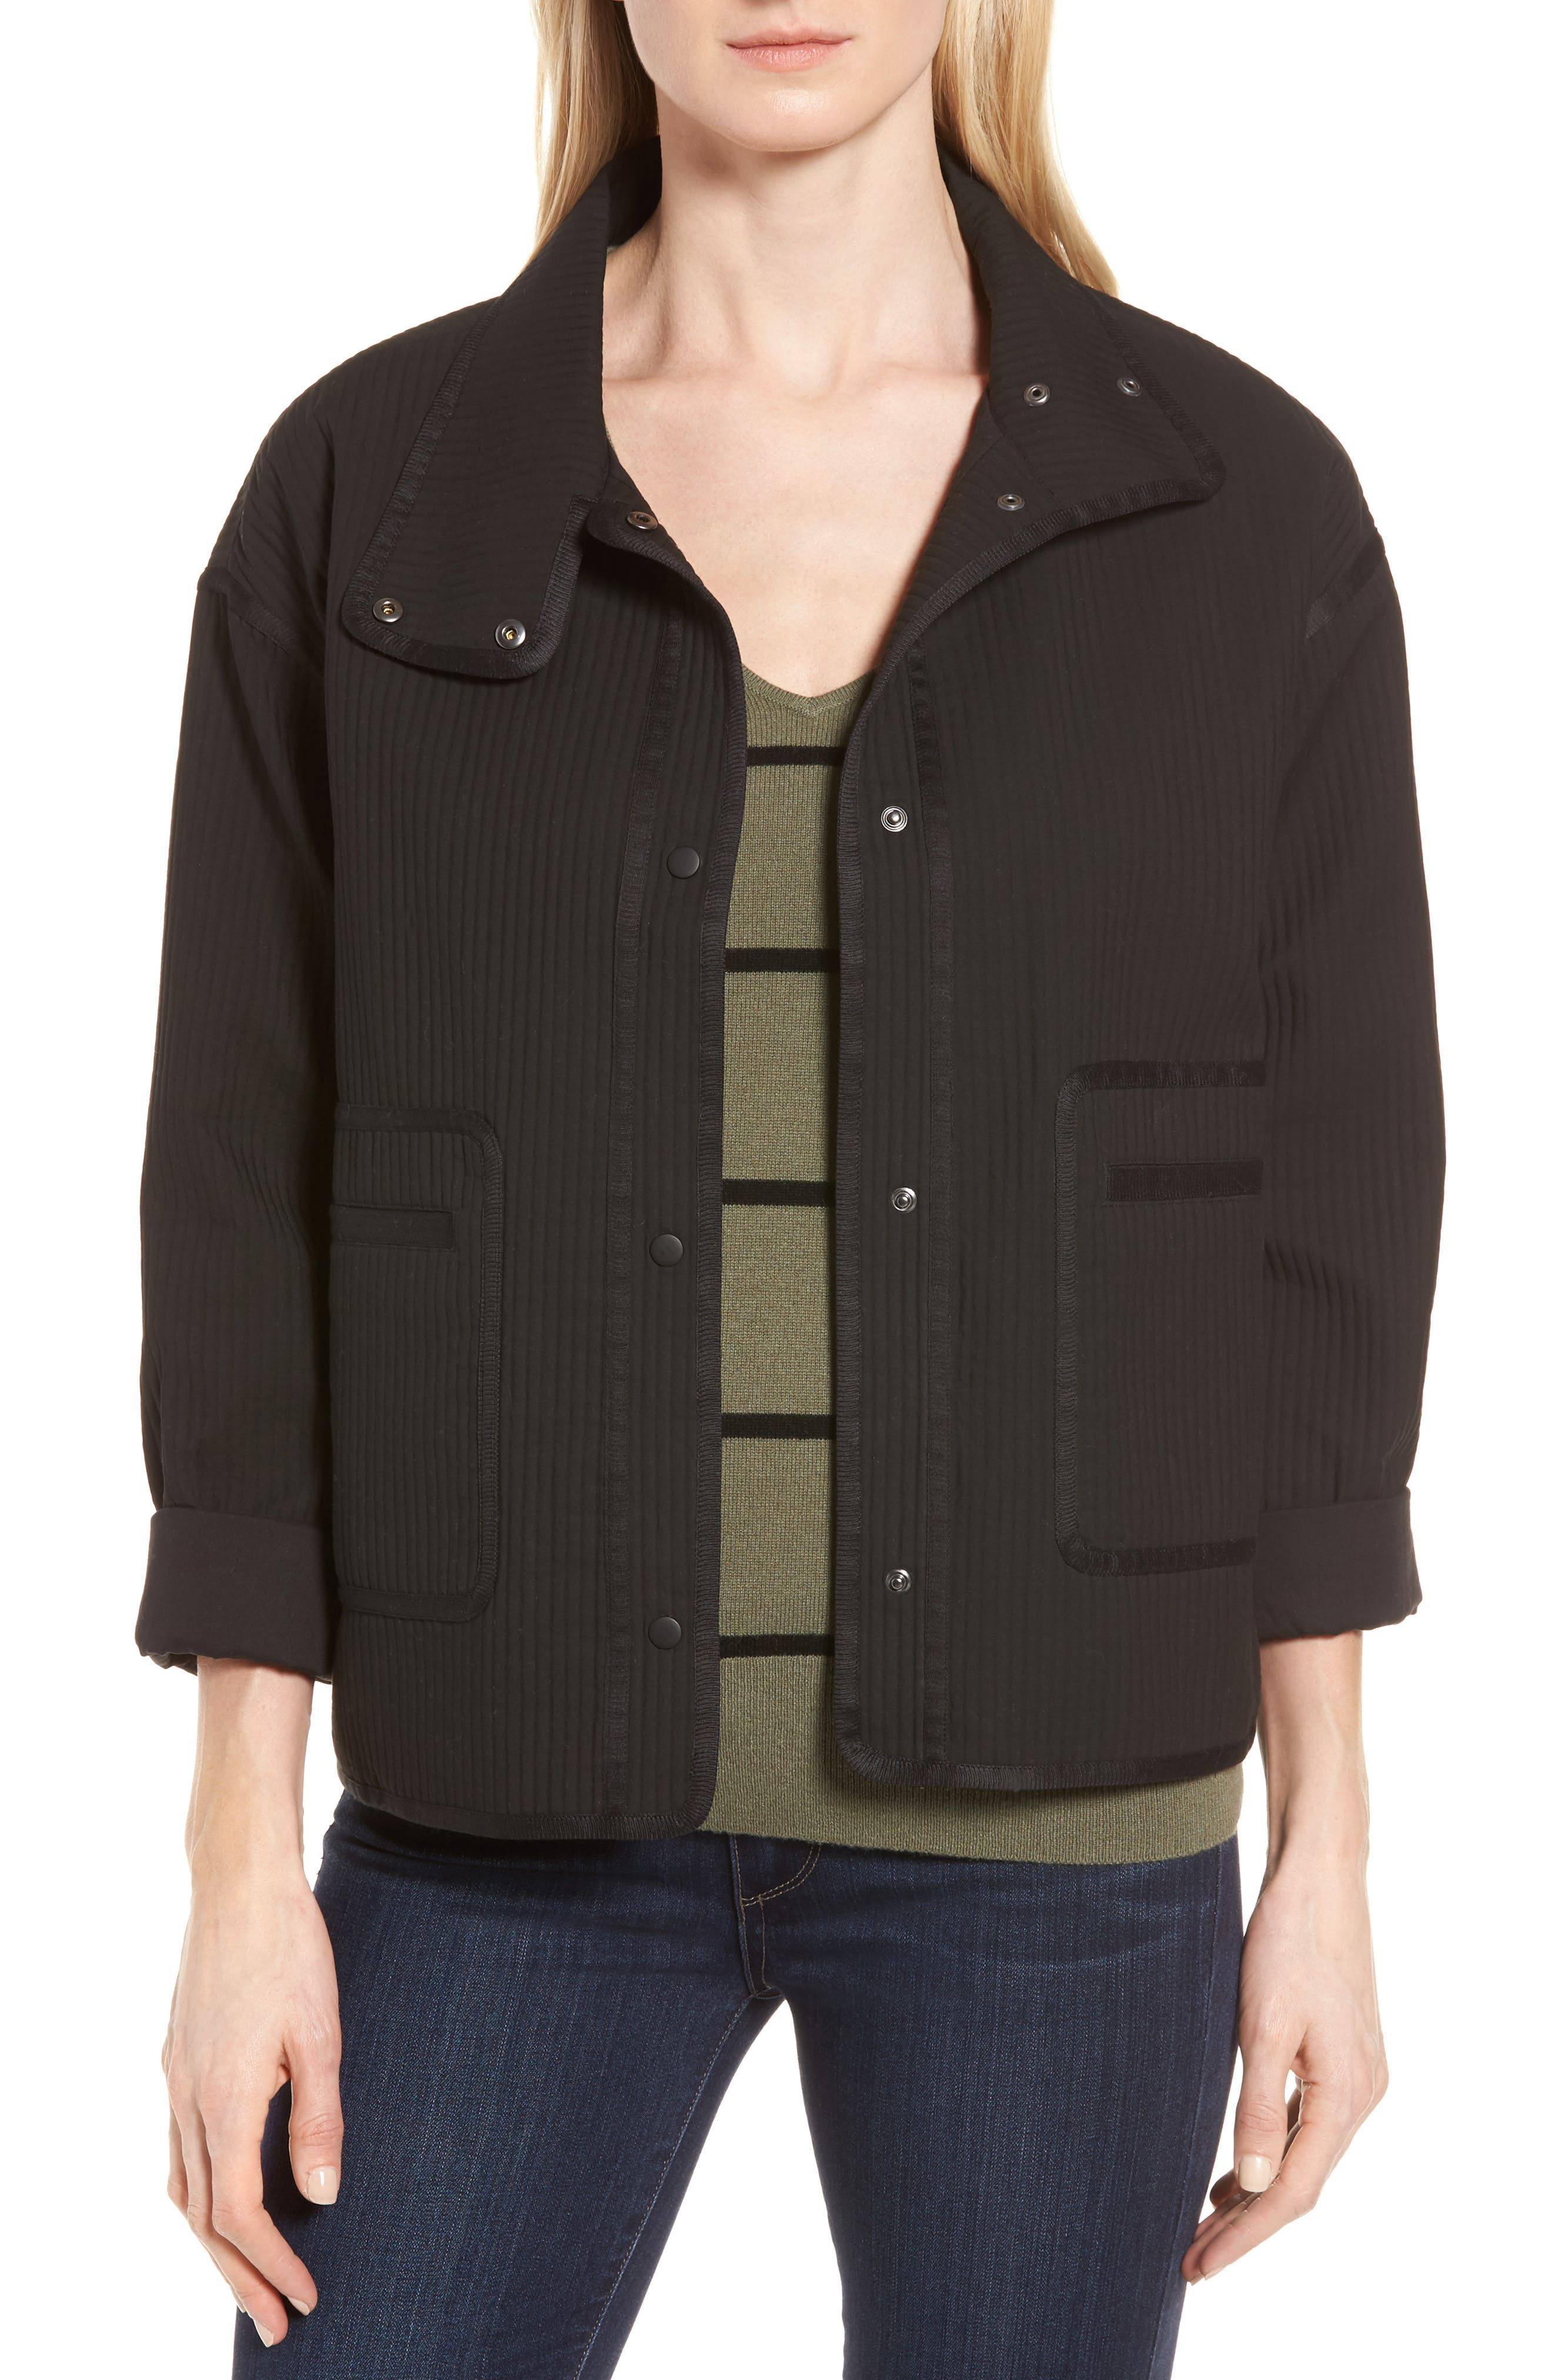 Alternate Image 1 Selected - Nordstrom Signature Ottoman Knit Jacket